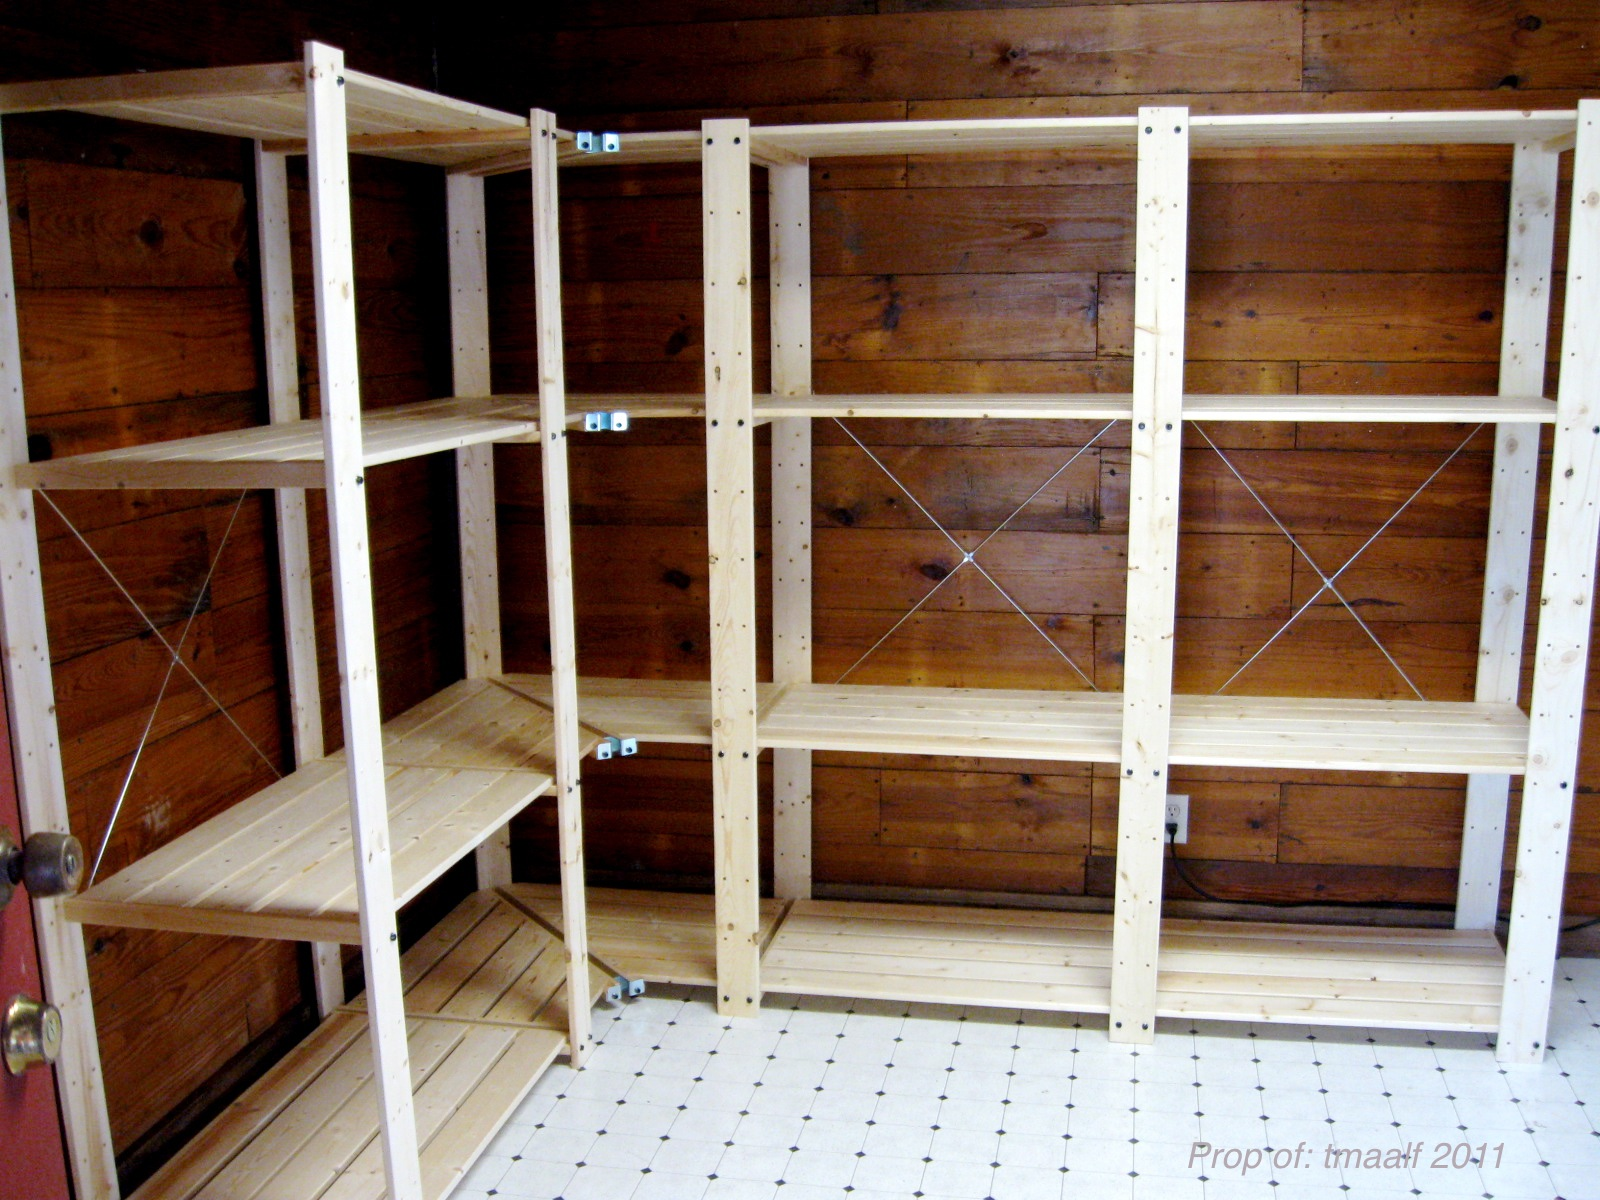 Wood Storage Shelves : Two Men and a Little Farm: MUDROOM SHELVING